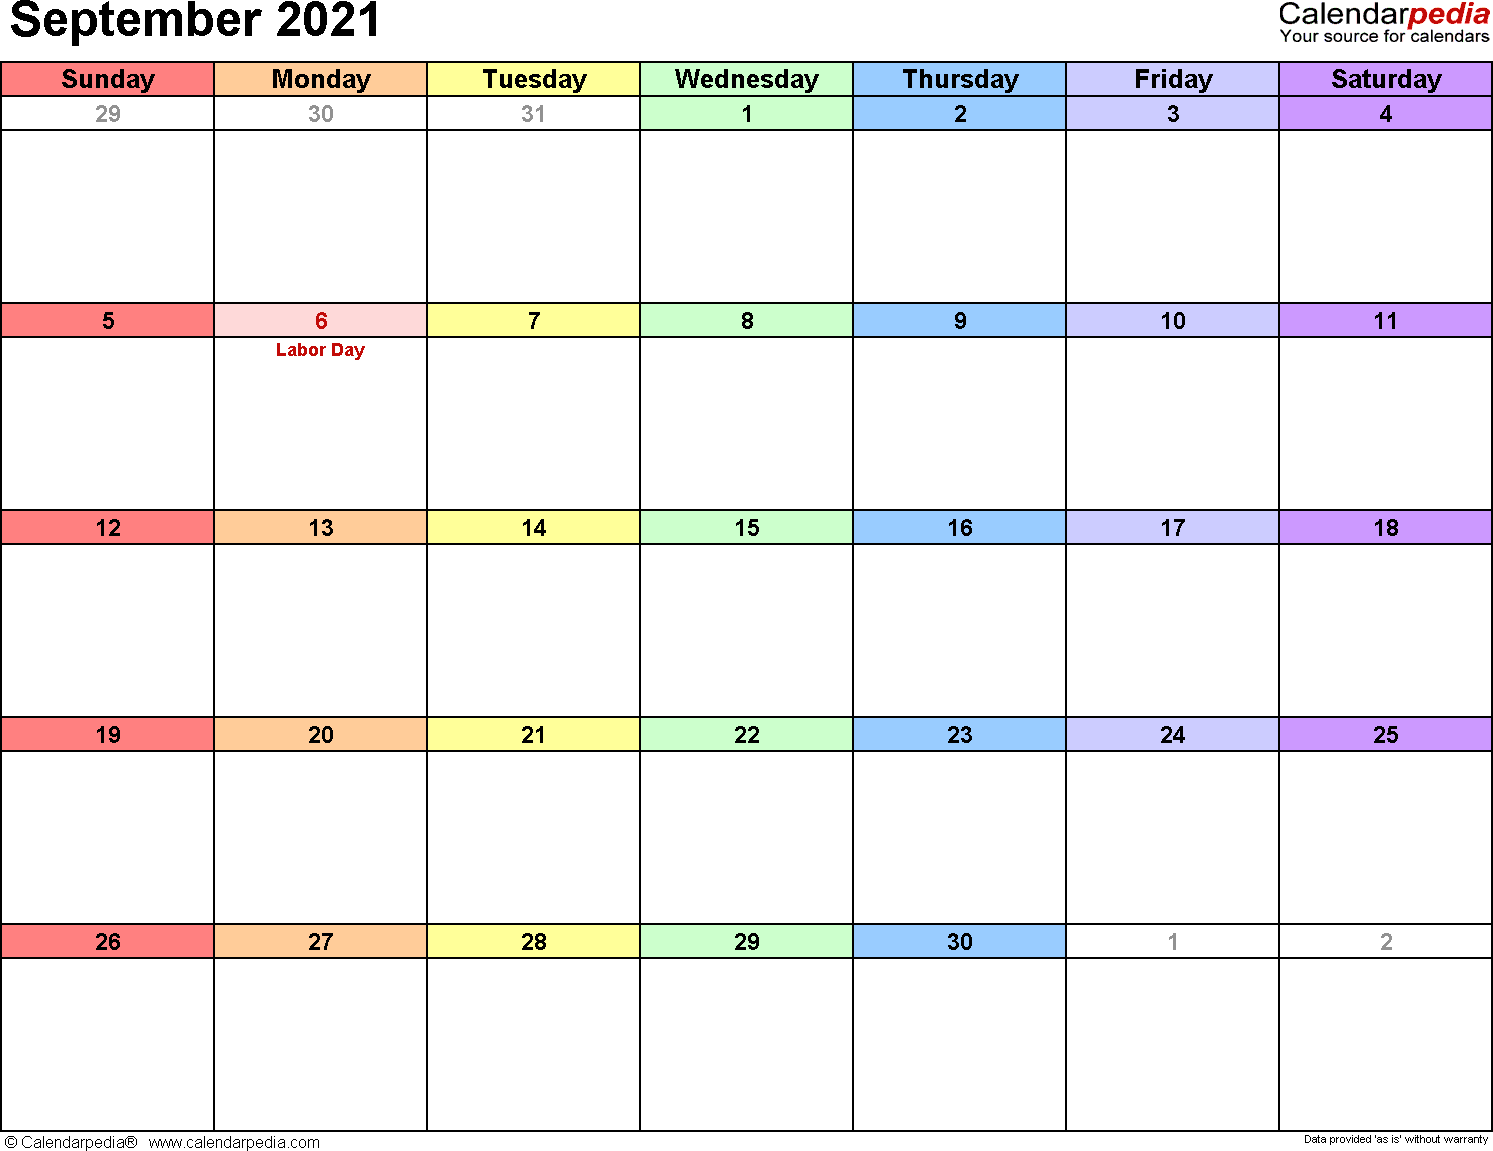 September 2021 Calendars for Word, Excel and PDF